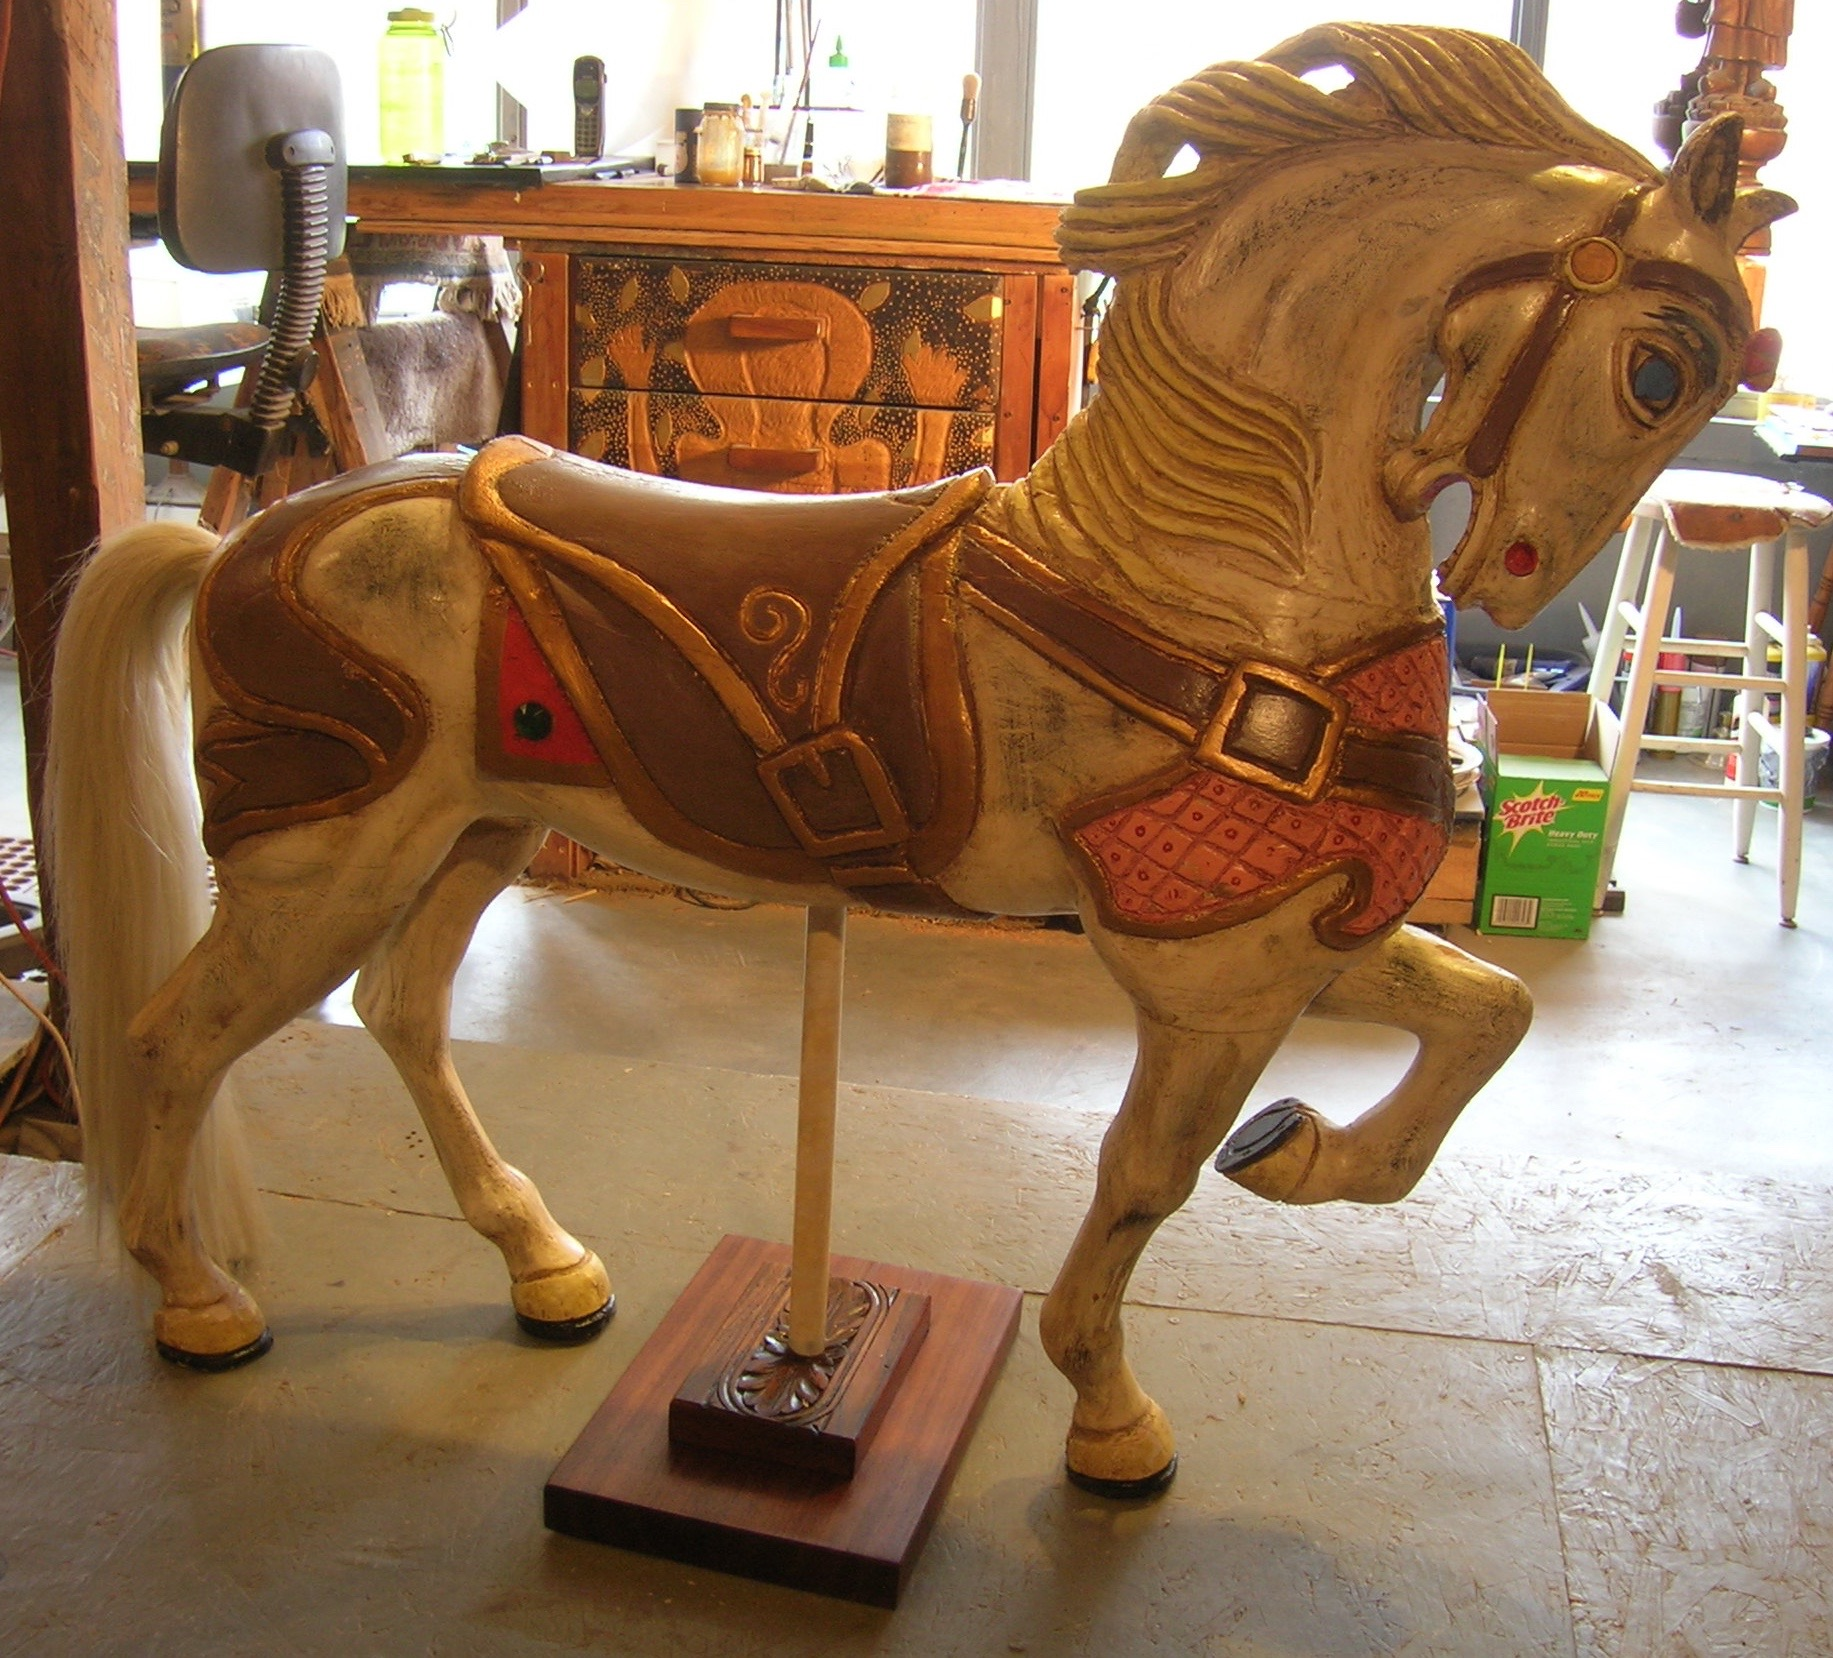 Carved carousel horse made into sculpture.